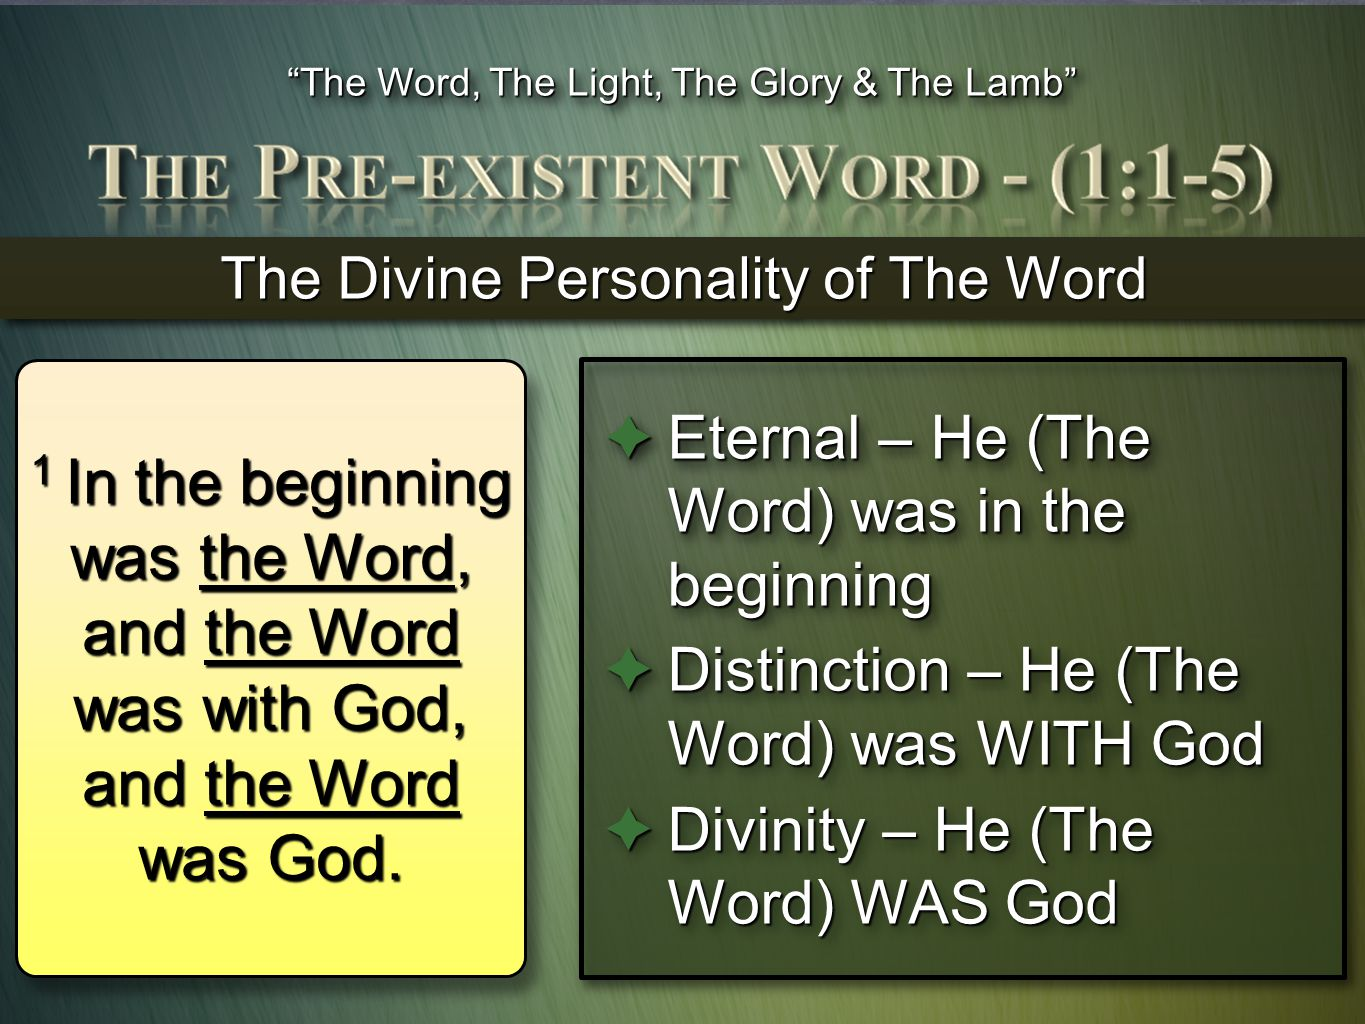 The Word, The Light, The Glory & The Lamb The Divine Personality of The Word  Eternal – He (The Word) was in the beginning  Distinction – He (The Word) was WITH God  Divinity – He (The Word) WAS God  Eternal – He (The Word) was in the beginning  Distinction – He (The Word) was WITH God  Divinity – He (The Word) WAS God 1 In the beginning was the Word, and the Word was with God, and the Word was God.